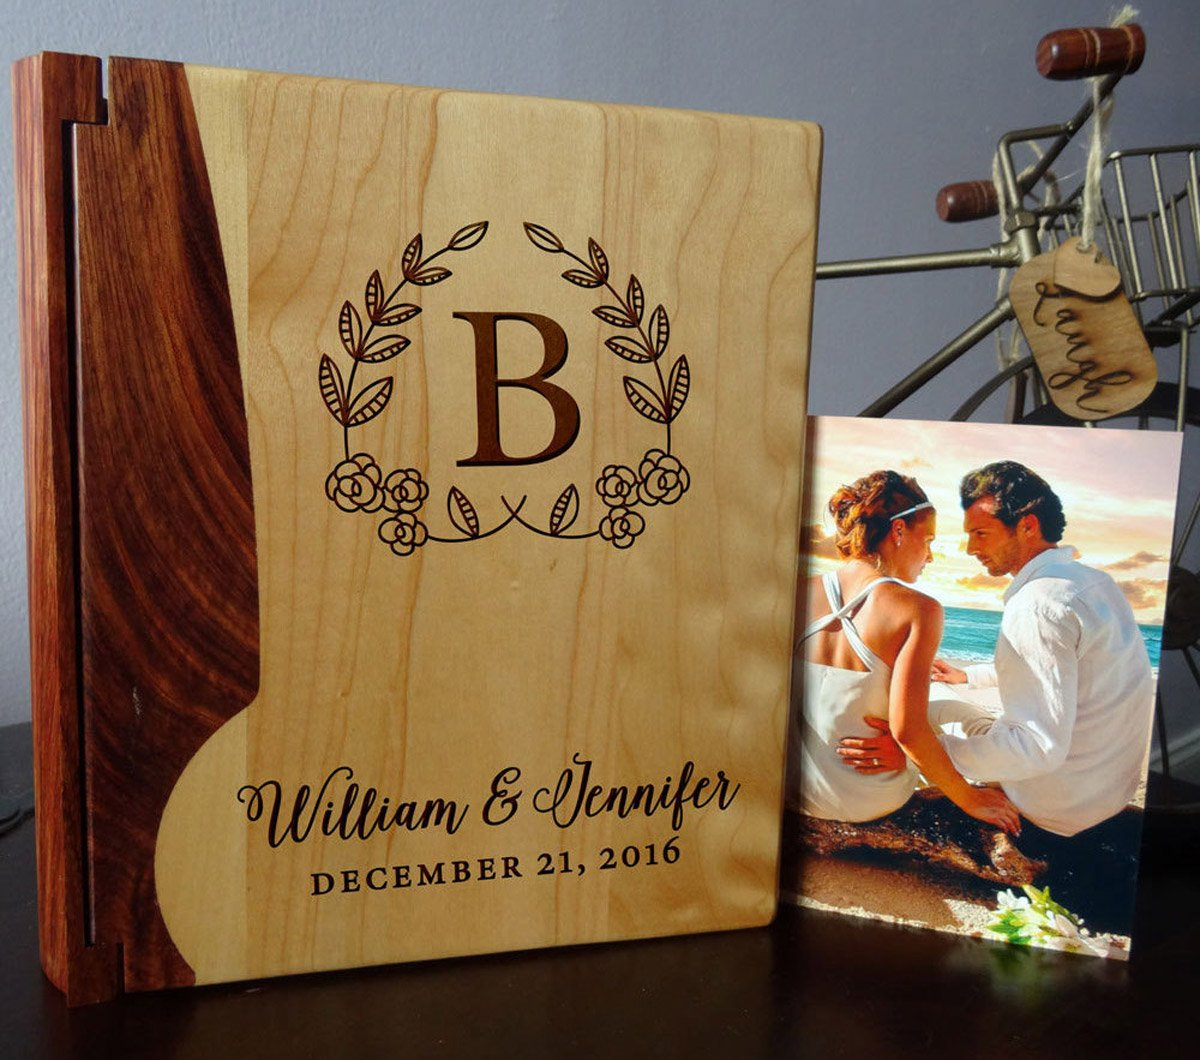 LoveToCreateStamps Personalized Wood Cover Photo Album, Custom Engraved Wedding Album, Style 105 (Maple & Rosewood Cover) by LoveToCreateStamps